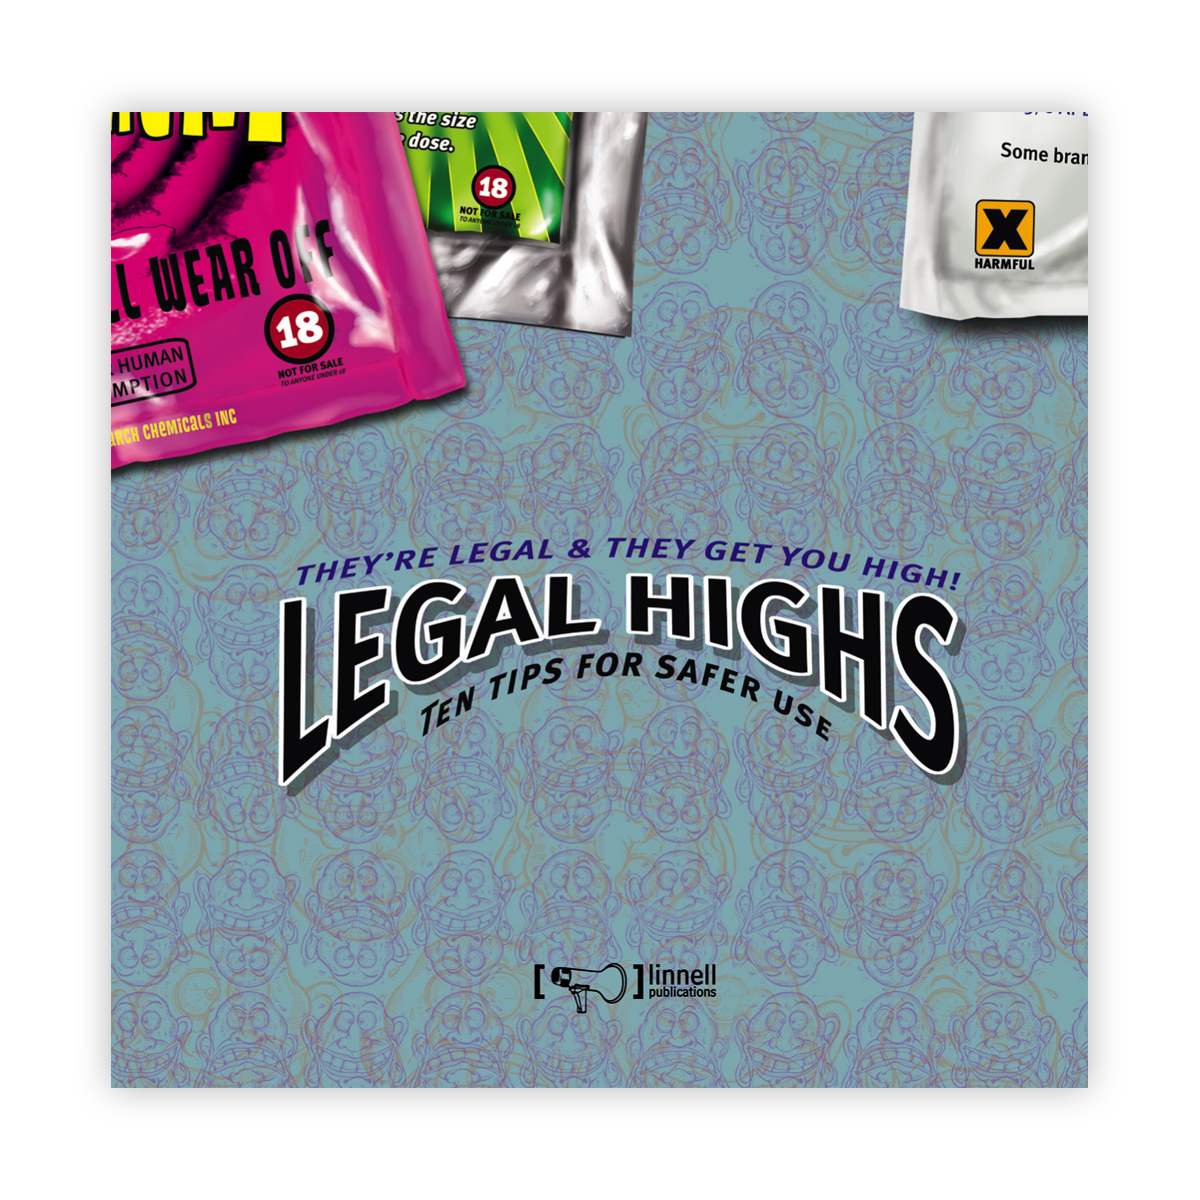 'Legal Highs' tips for safer use - Being updated